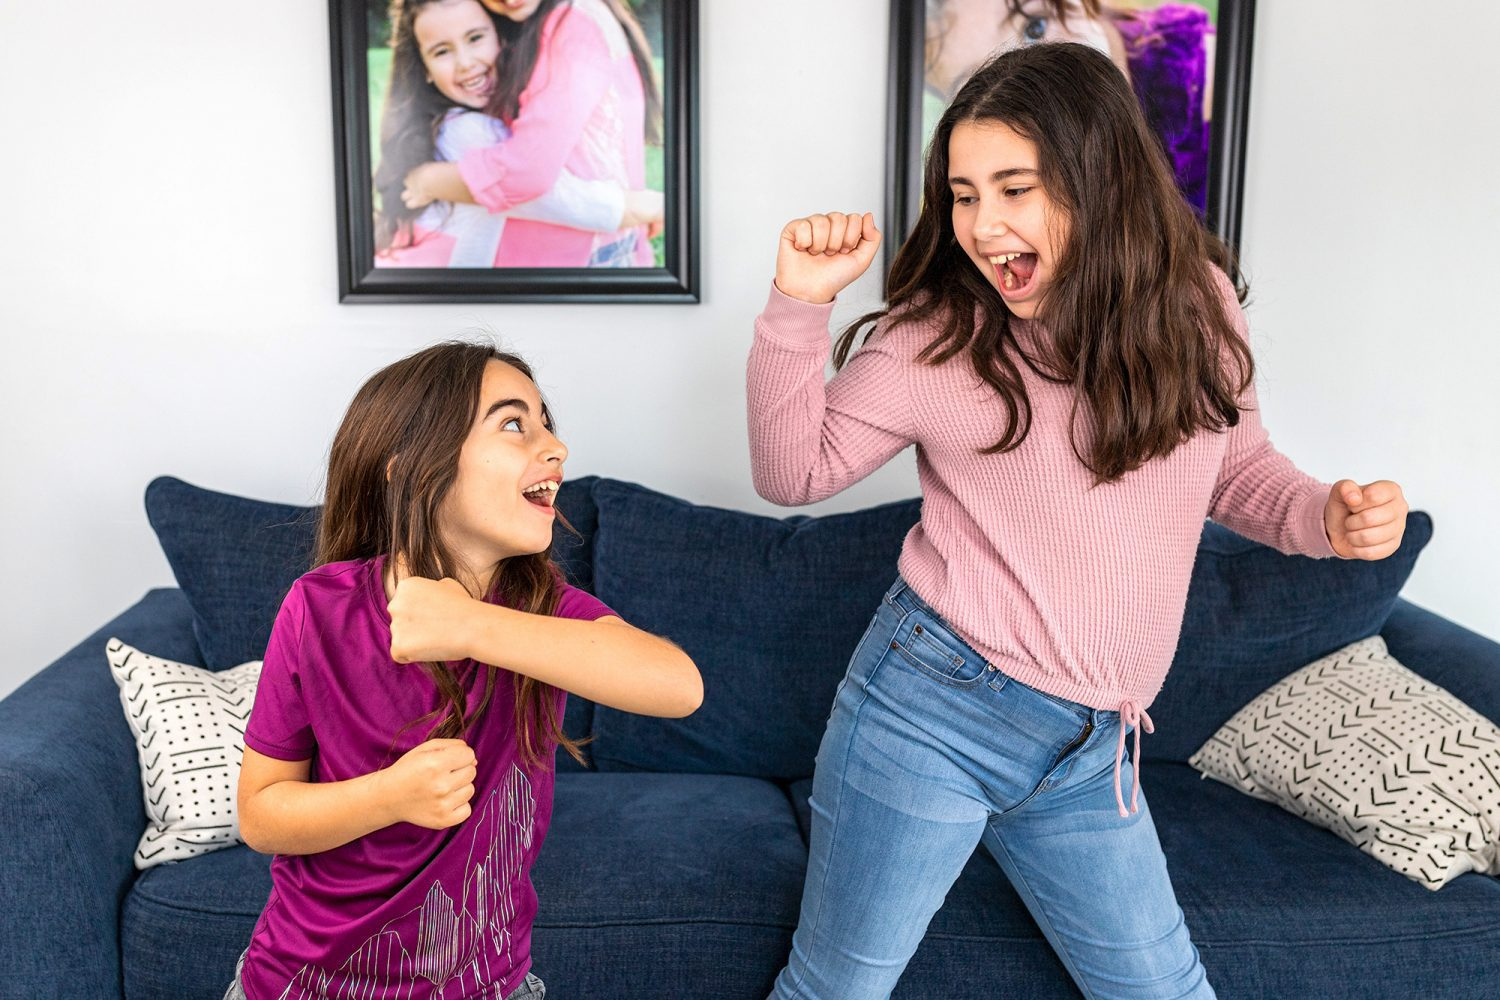 two girls dancing in front of a couch